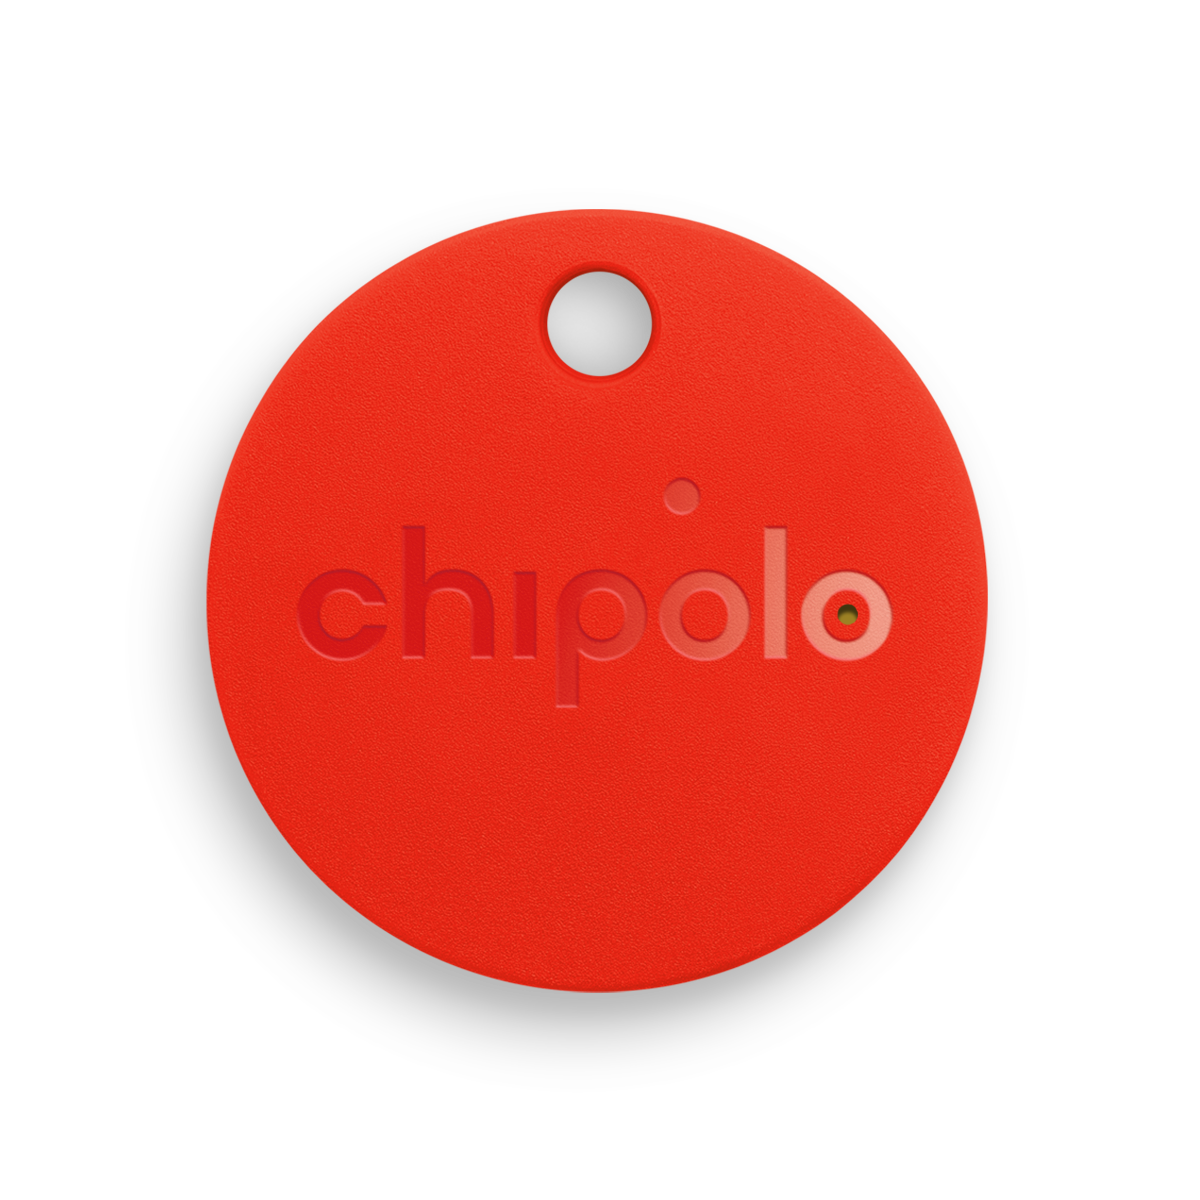 Chipolo Rood